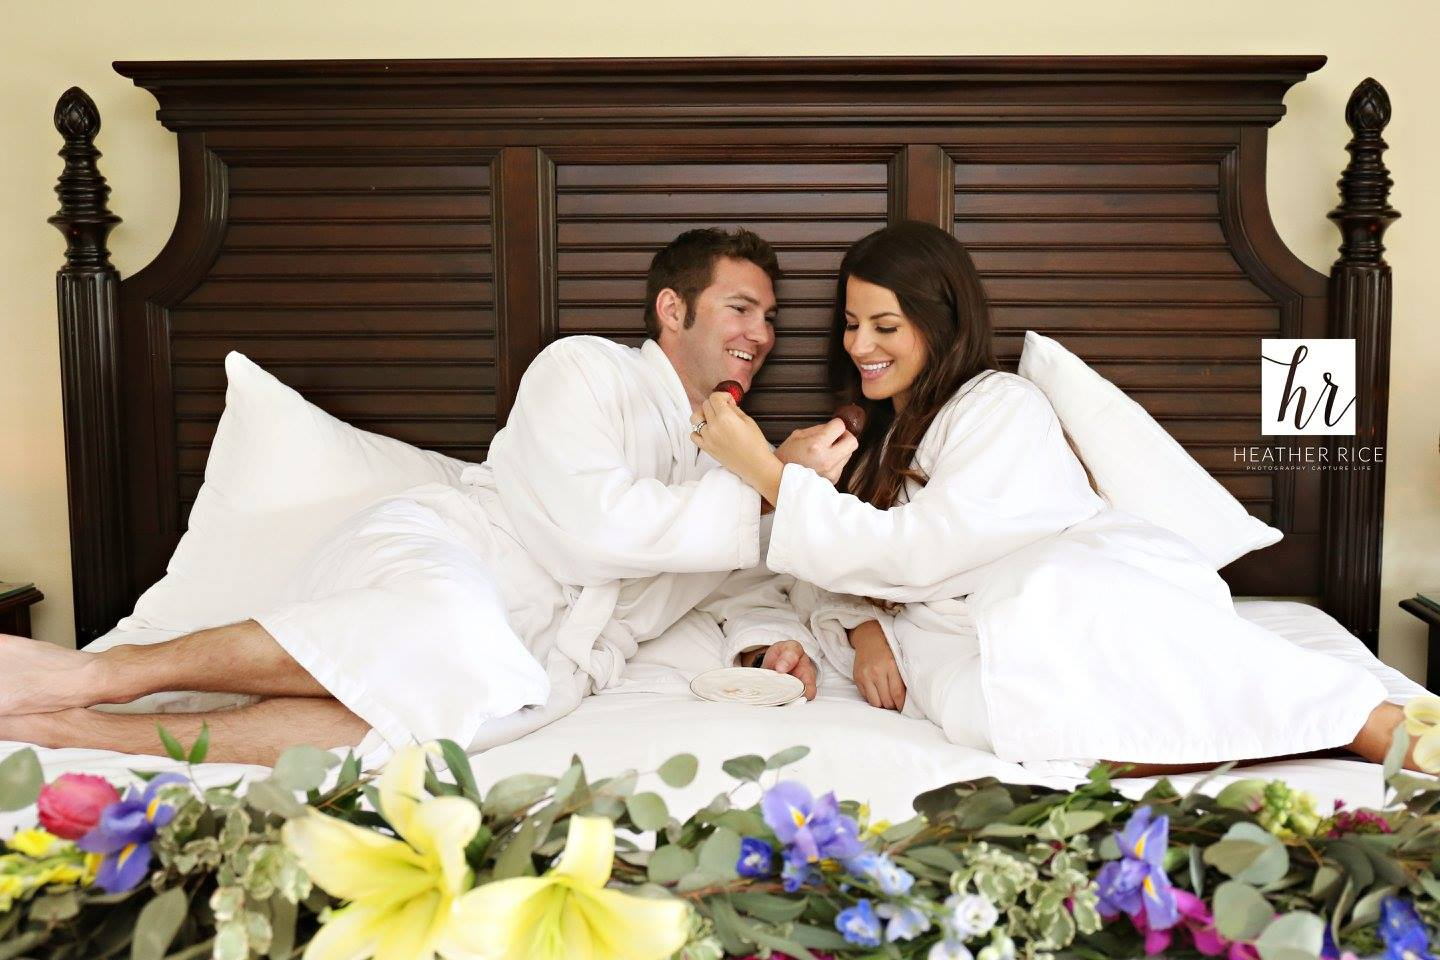 Bride and Groom in a hotel bed on wedding weekend